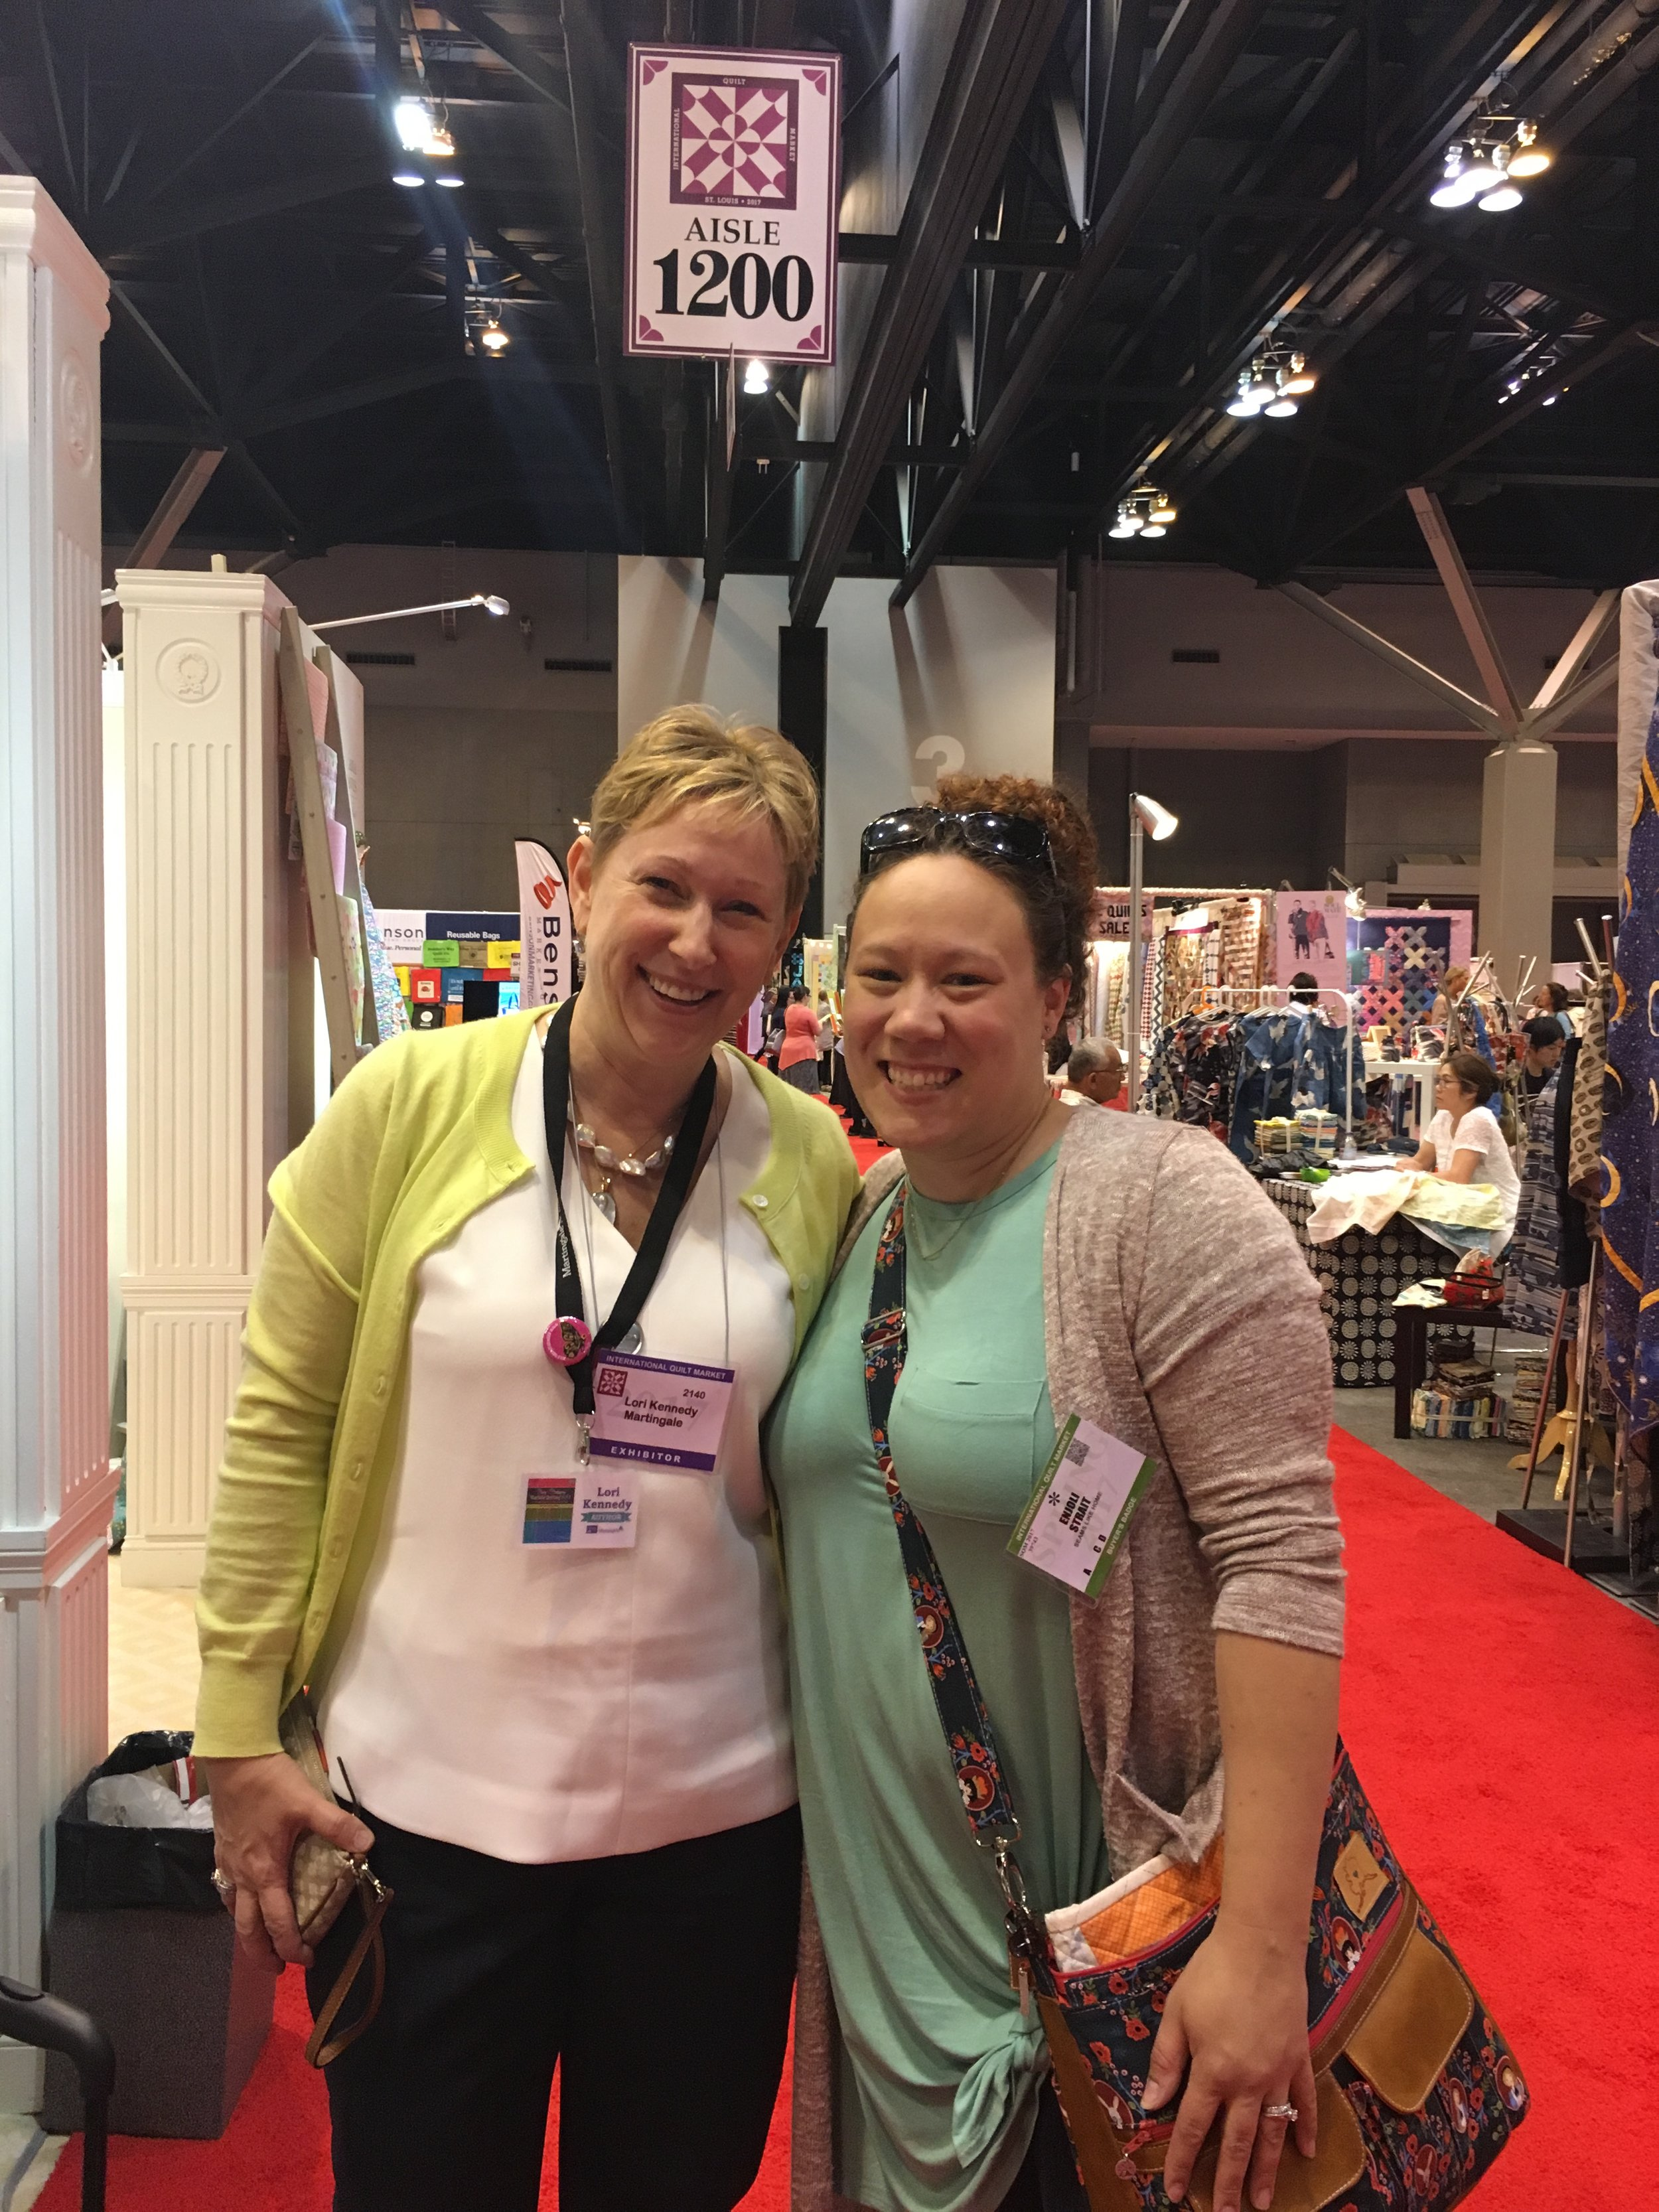 Lori Kennedy is so nice! And she told me she loved my business name!